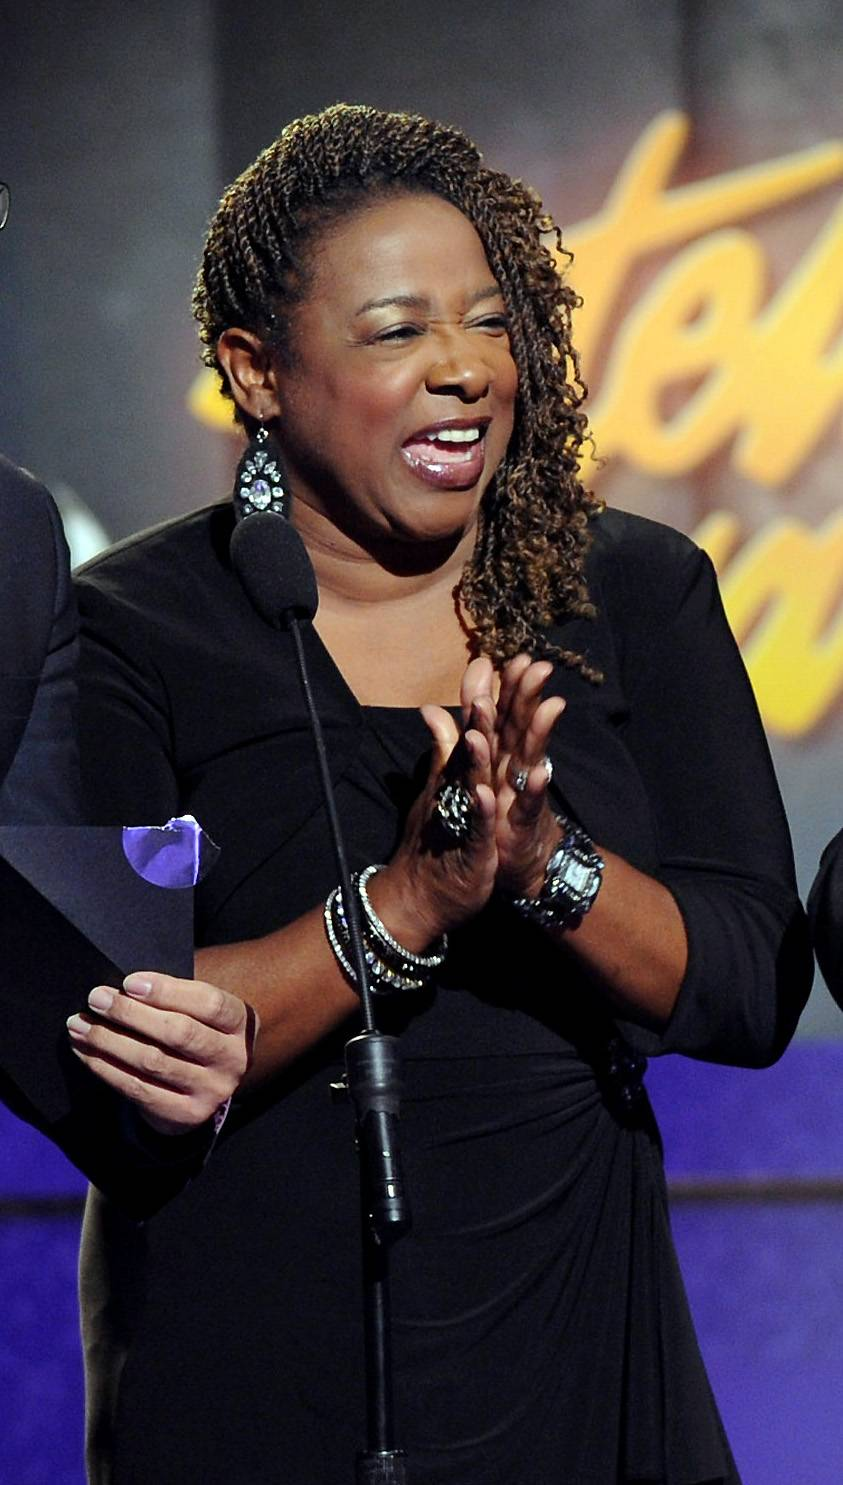 Beverly Crawford  - Tune in to see Beverly Crawford on this upcoming episode of Lift Every Voice this Sunday at 10A/9C. (Photo: Rick Diamond/Getty Images for Stellar Awards)